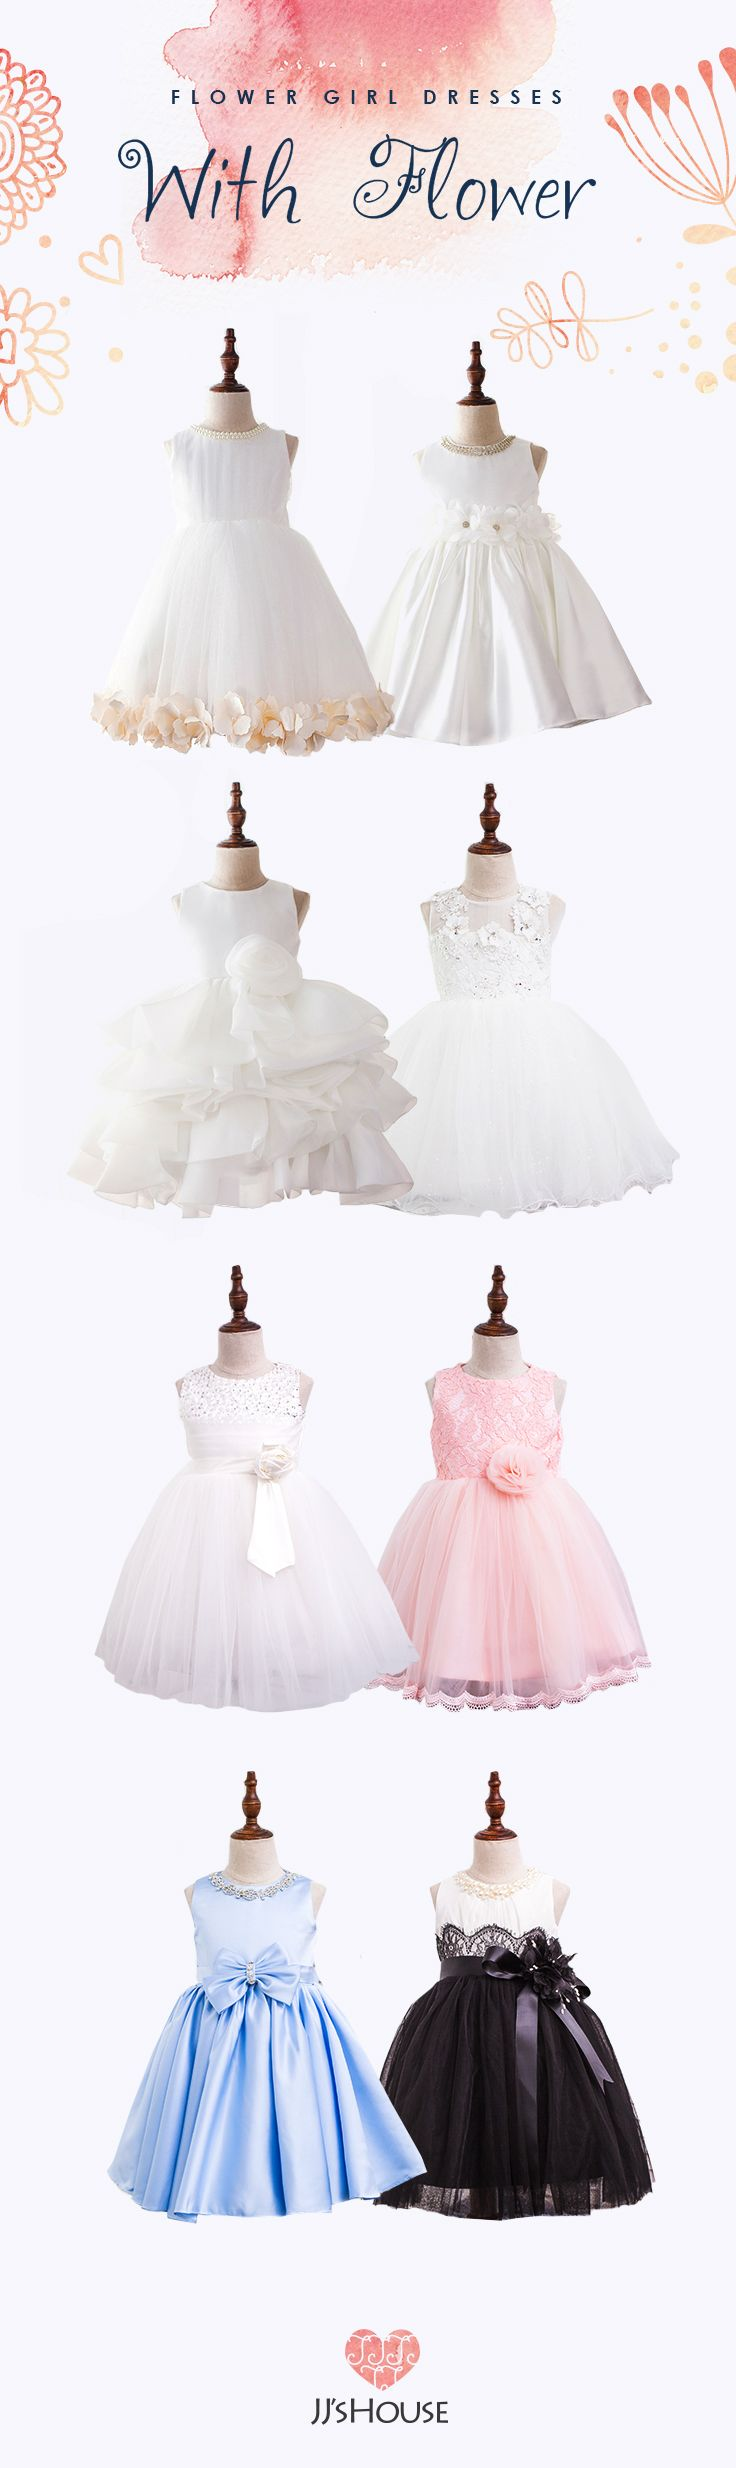 Adorable JJsHouse Flower Girl Dresses #flowergirldress